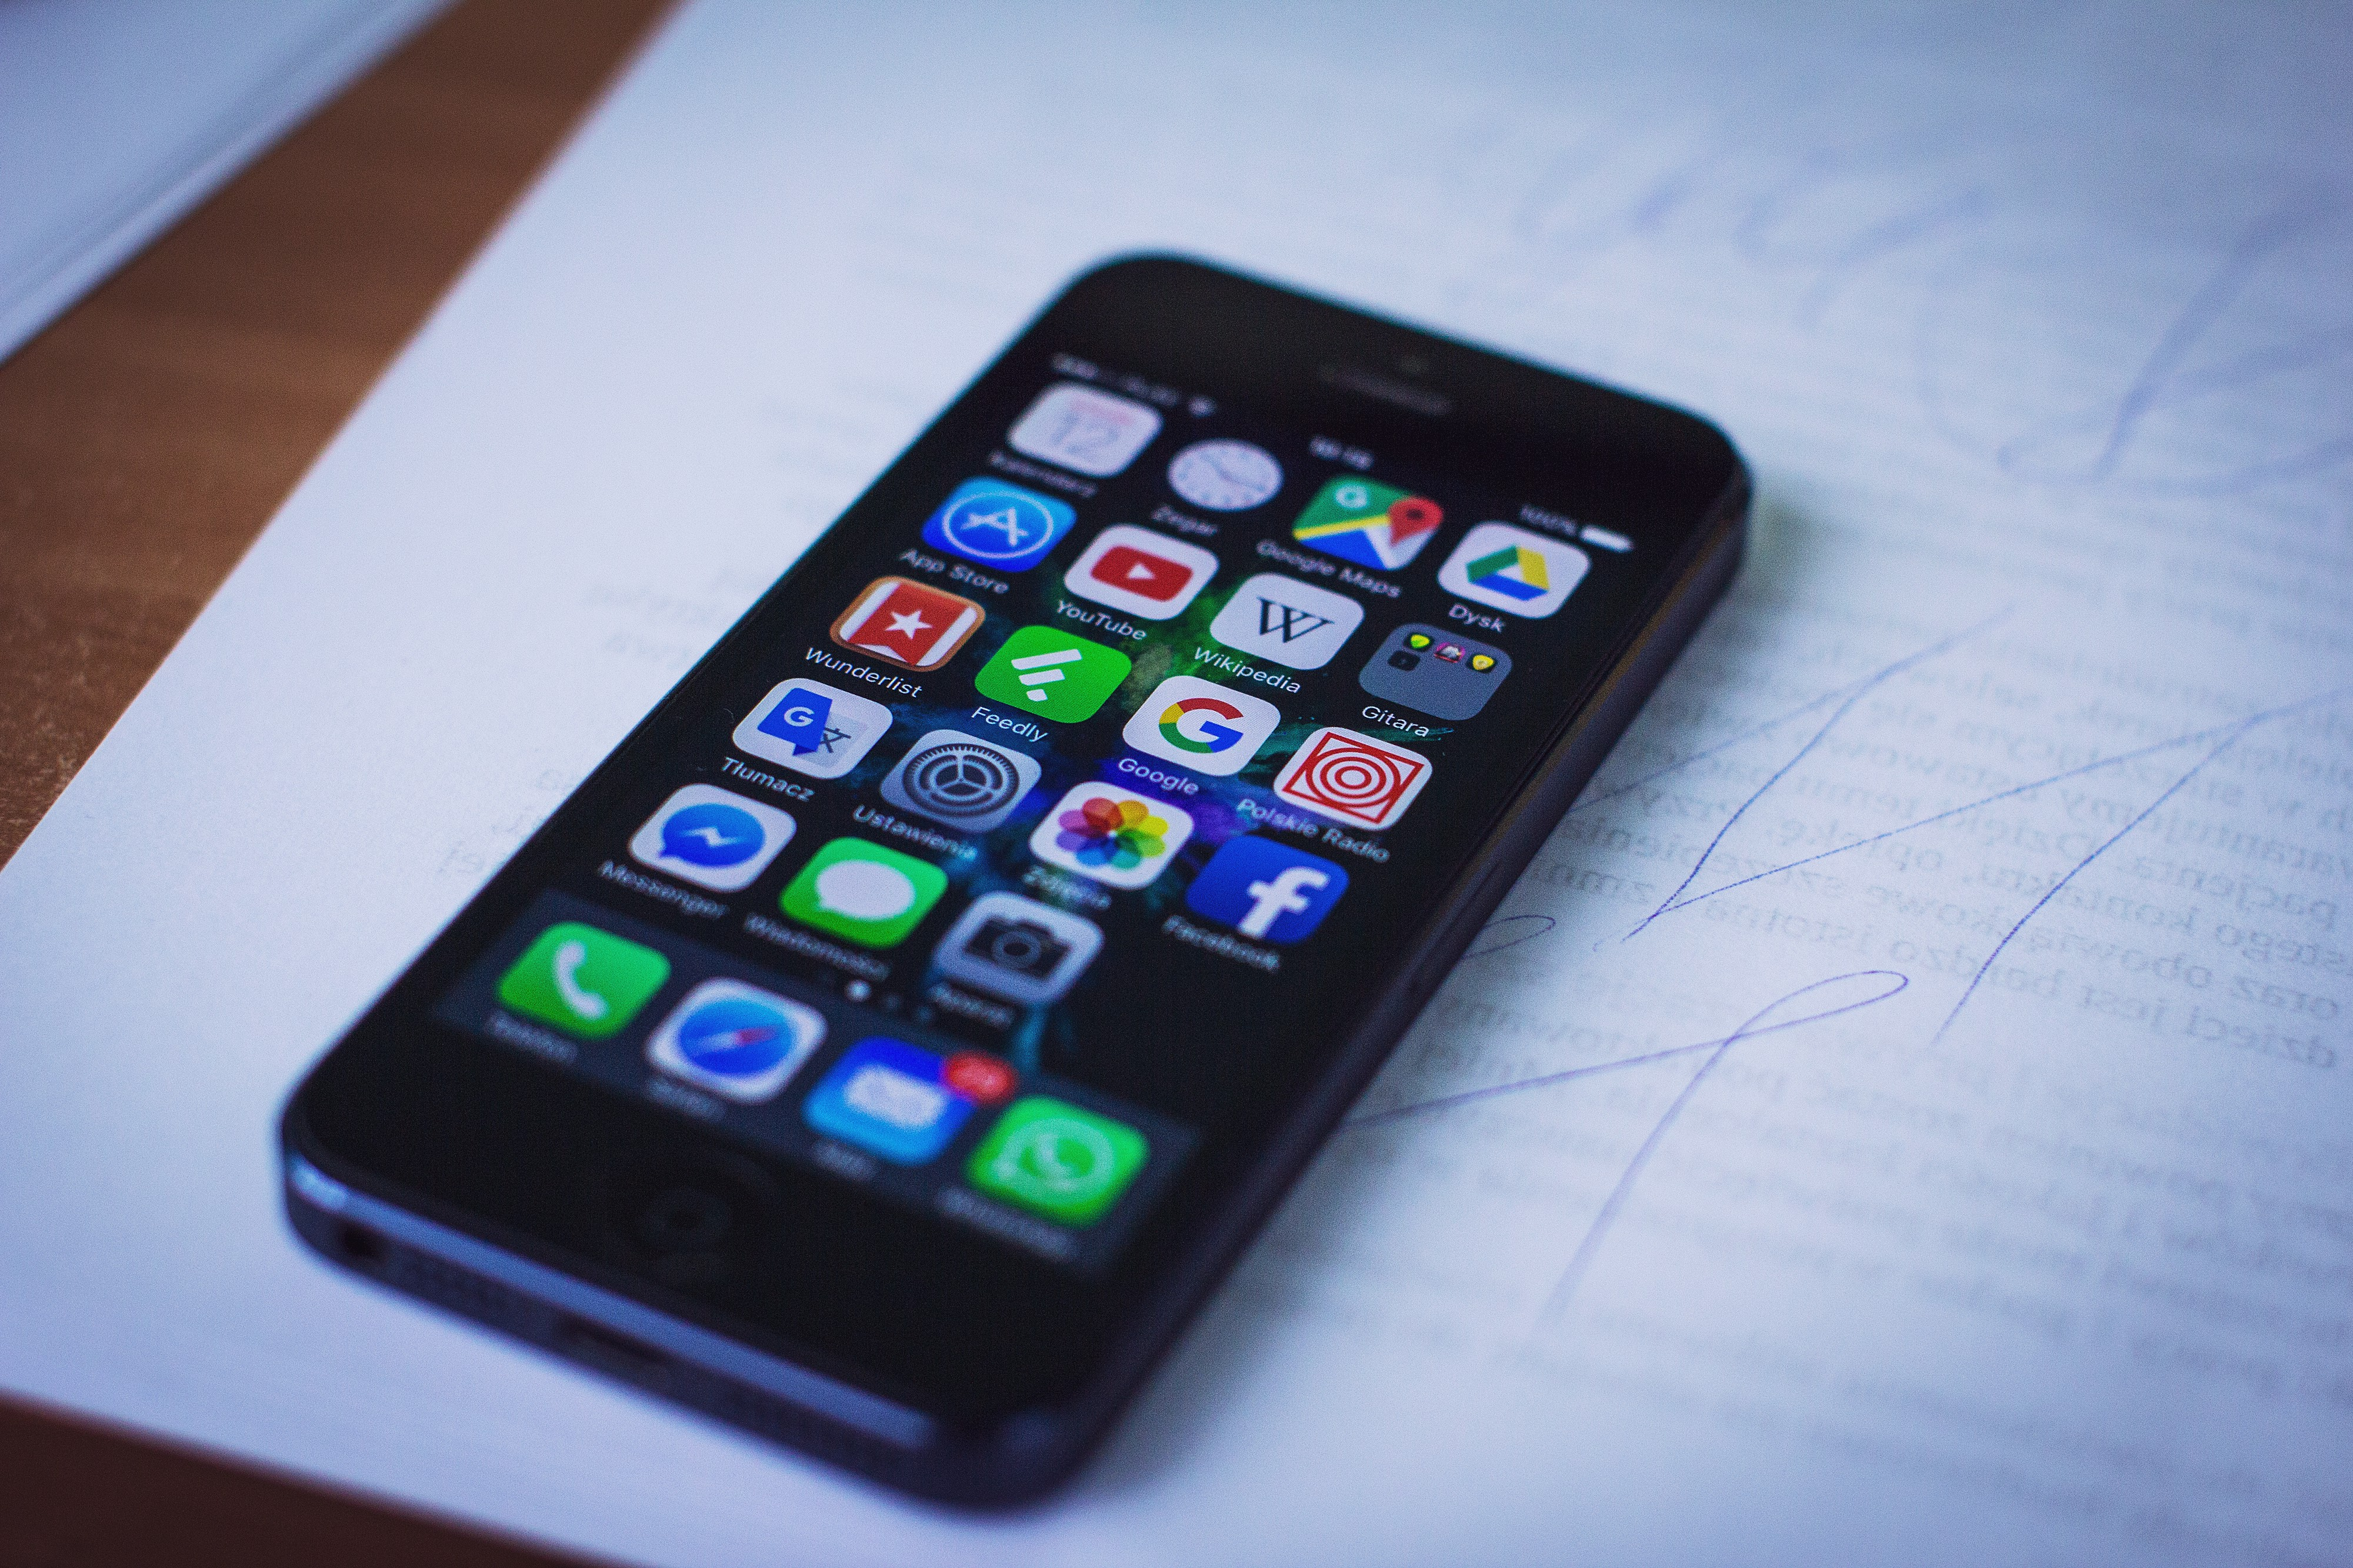 10 Productivity Apps for Marketing Students That Might Make